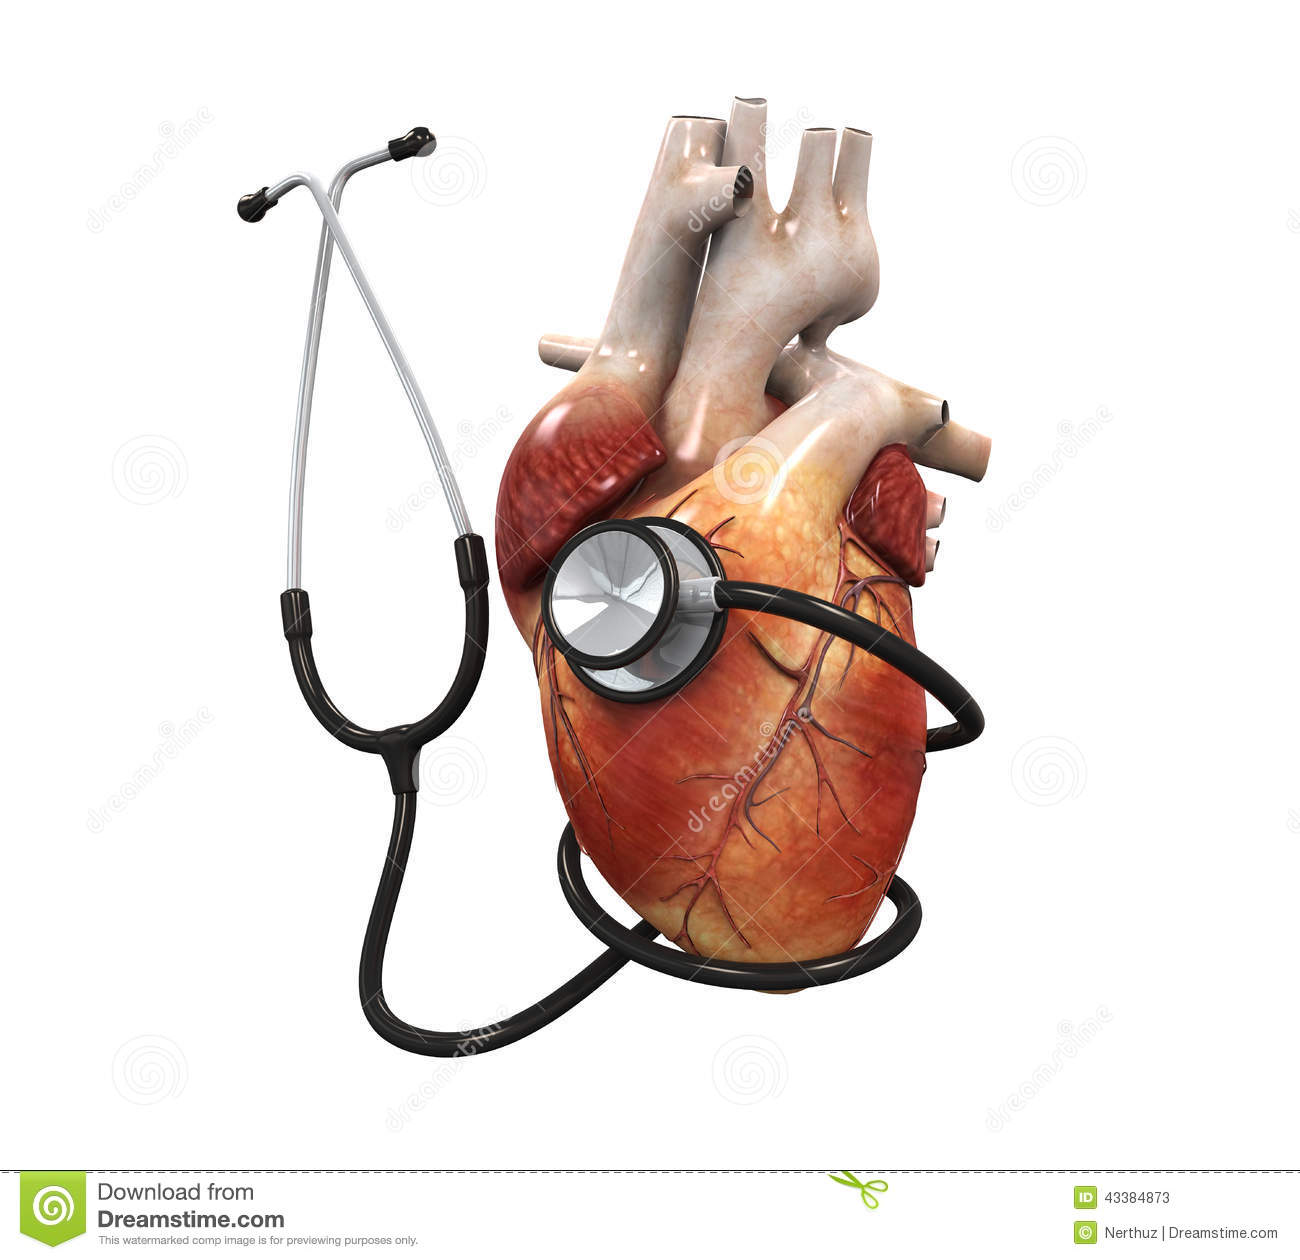 how to listen to heart sounds with a stethoscope